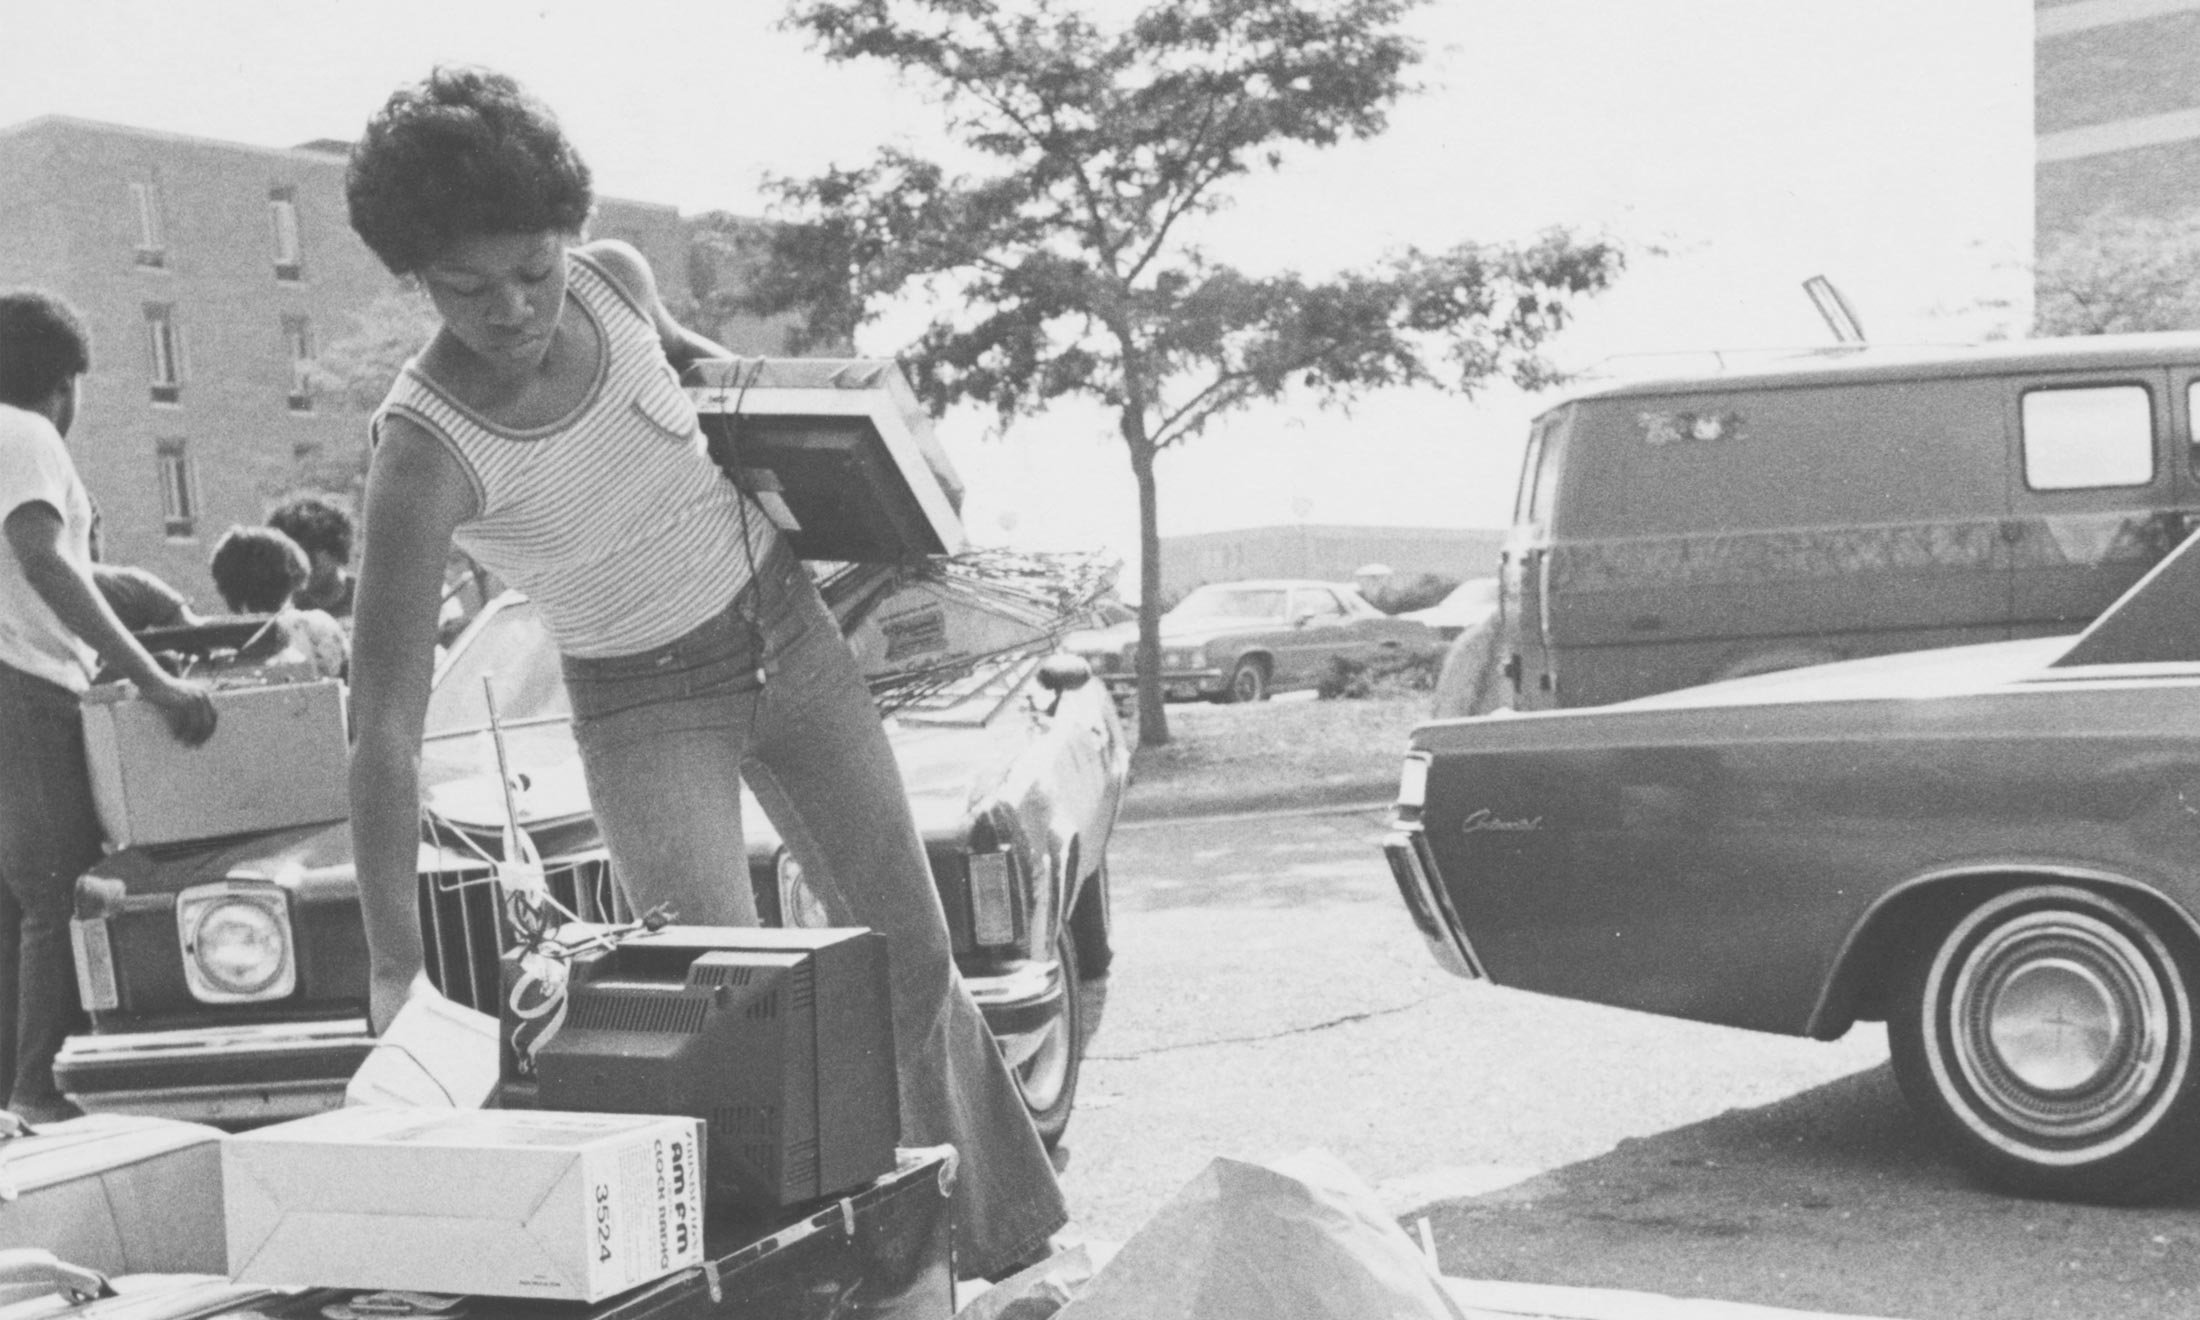 A black and white photo of an African-American Oakland University student picking up electronics from the curbside in front of an old styled car